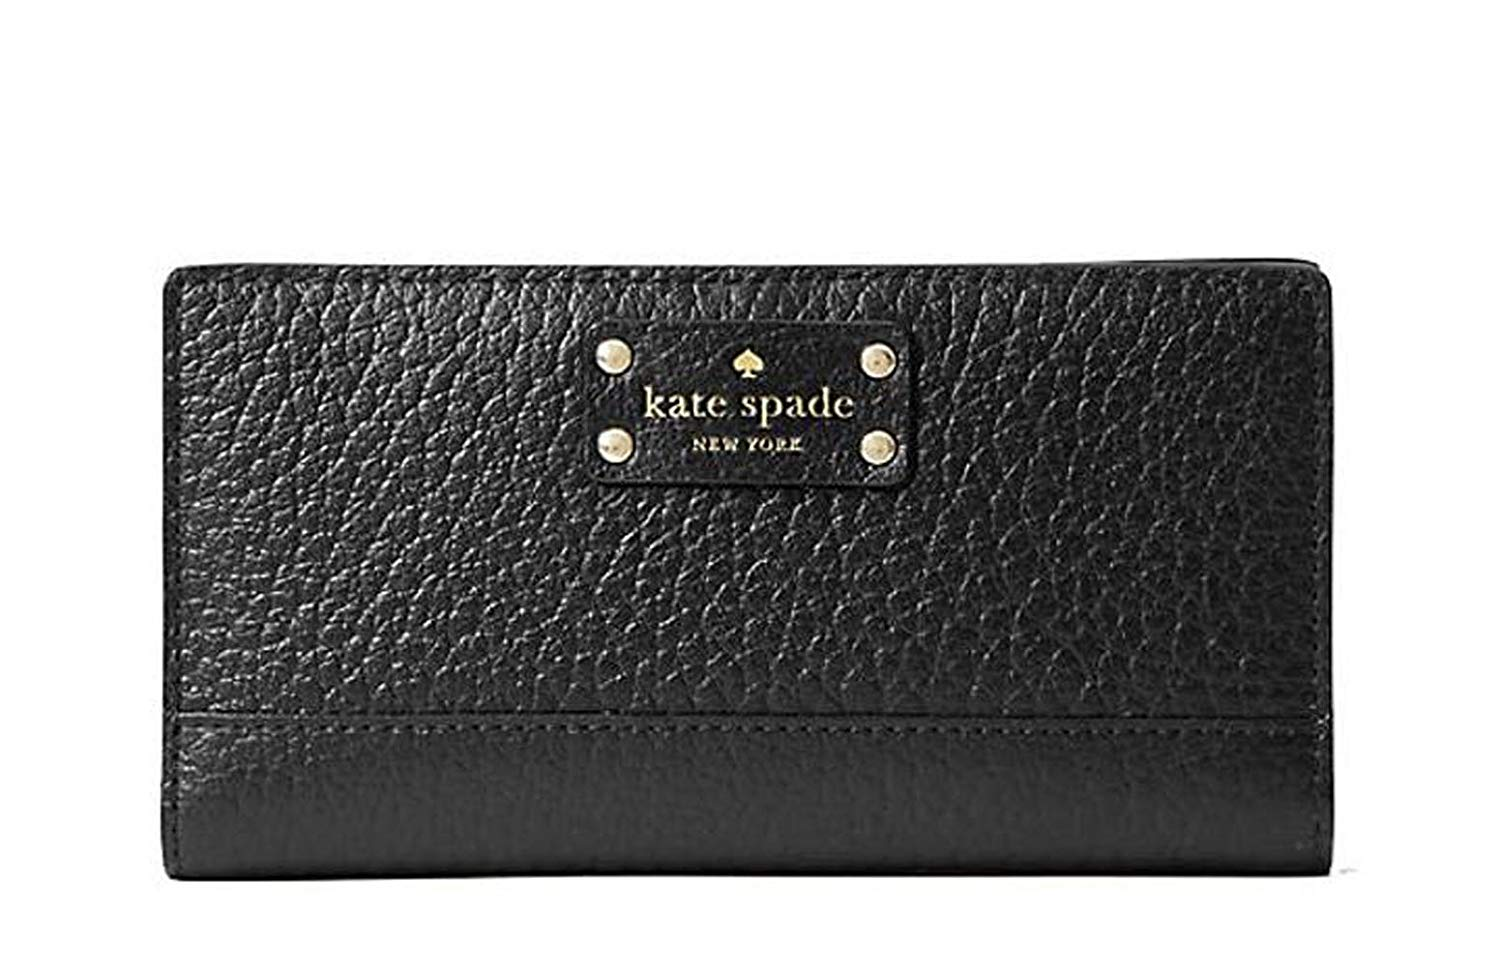 abe33391d8 Cheap Kate Spade Stacy Wallet, find Kate Spade Stacy Wallet deals on ...